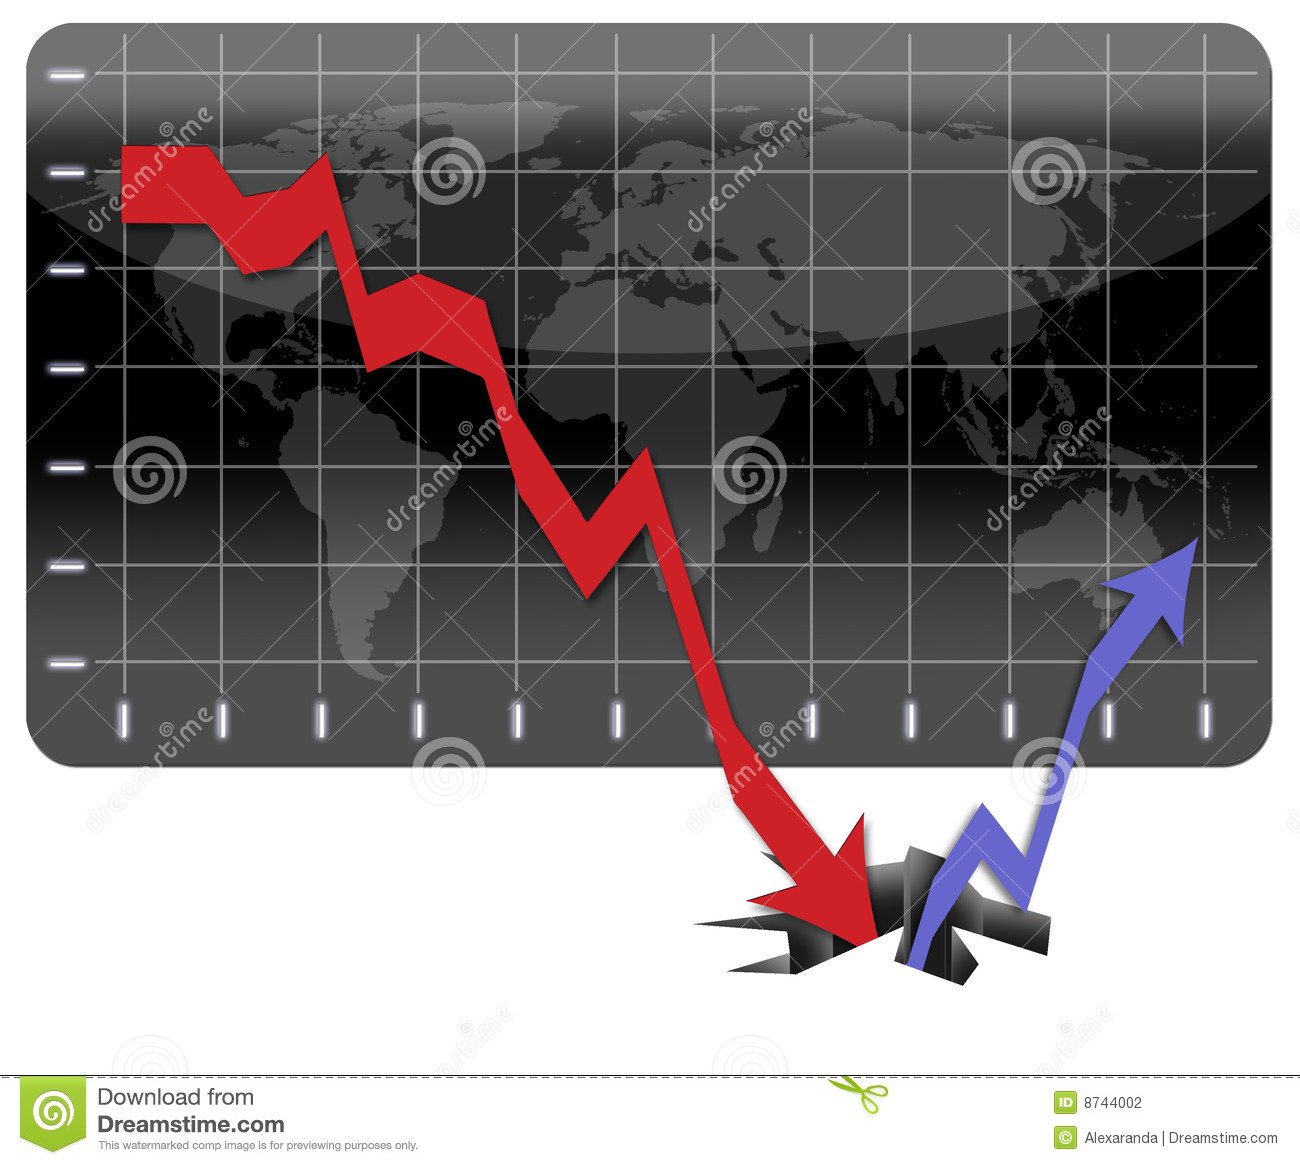 Recovering from the global economic crisis